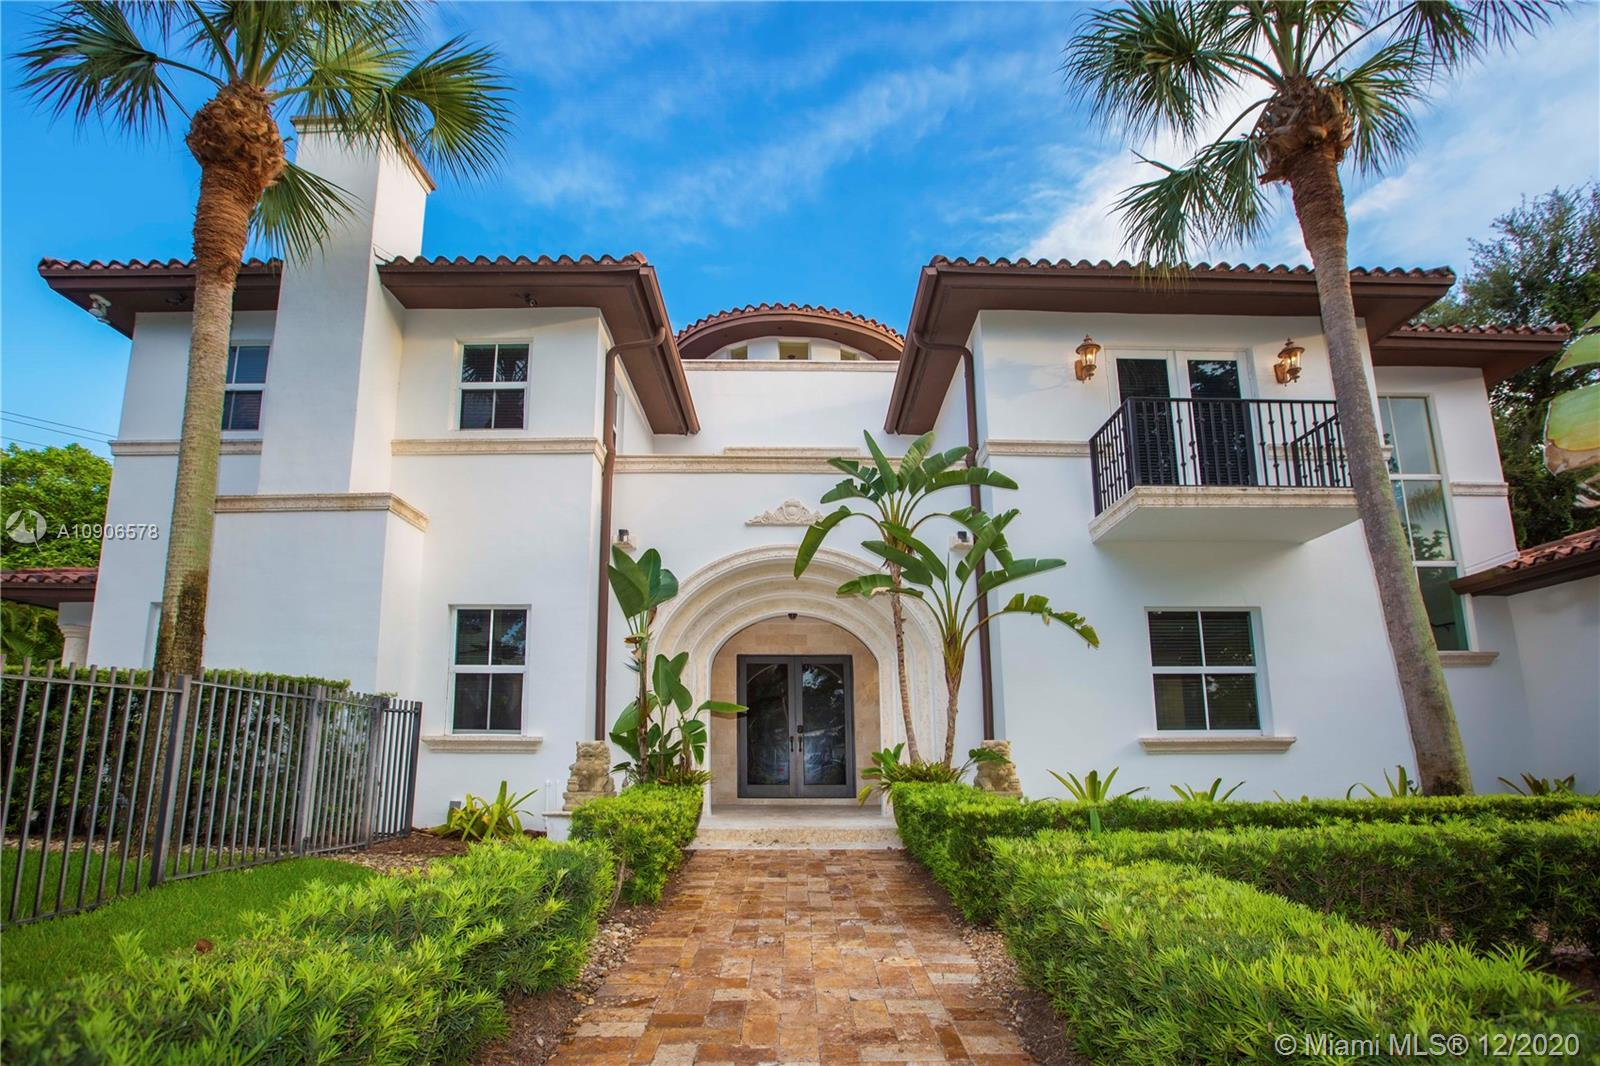 Stately and Imposing Elegance in the  Platinum Triangle  of Coral Gables, just off Old Cutler Road. Walled and gated 6-bedroom, 5.5-baths, 2-car garage, and plenty of space to enjoy. Beautiful and spacious Mediterranean kitchen, elegant dining room, formal living and a very generous family room with access to the covered patio, pool and hot tub, perfect for entertaining. Marble and hardwood floors, high ceilings impact windows and doors, one bedroom downstairs with en-suite bathroom. Upstairs, 4-bedrooms with en-suite bathrooms plus the spacious master suite with walk in closets and a sprawling master bath with his and hers vanities, shower and tub. This beautiful home needs nothing but you to be complete. Reasonably priced and ready for a new family.